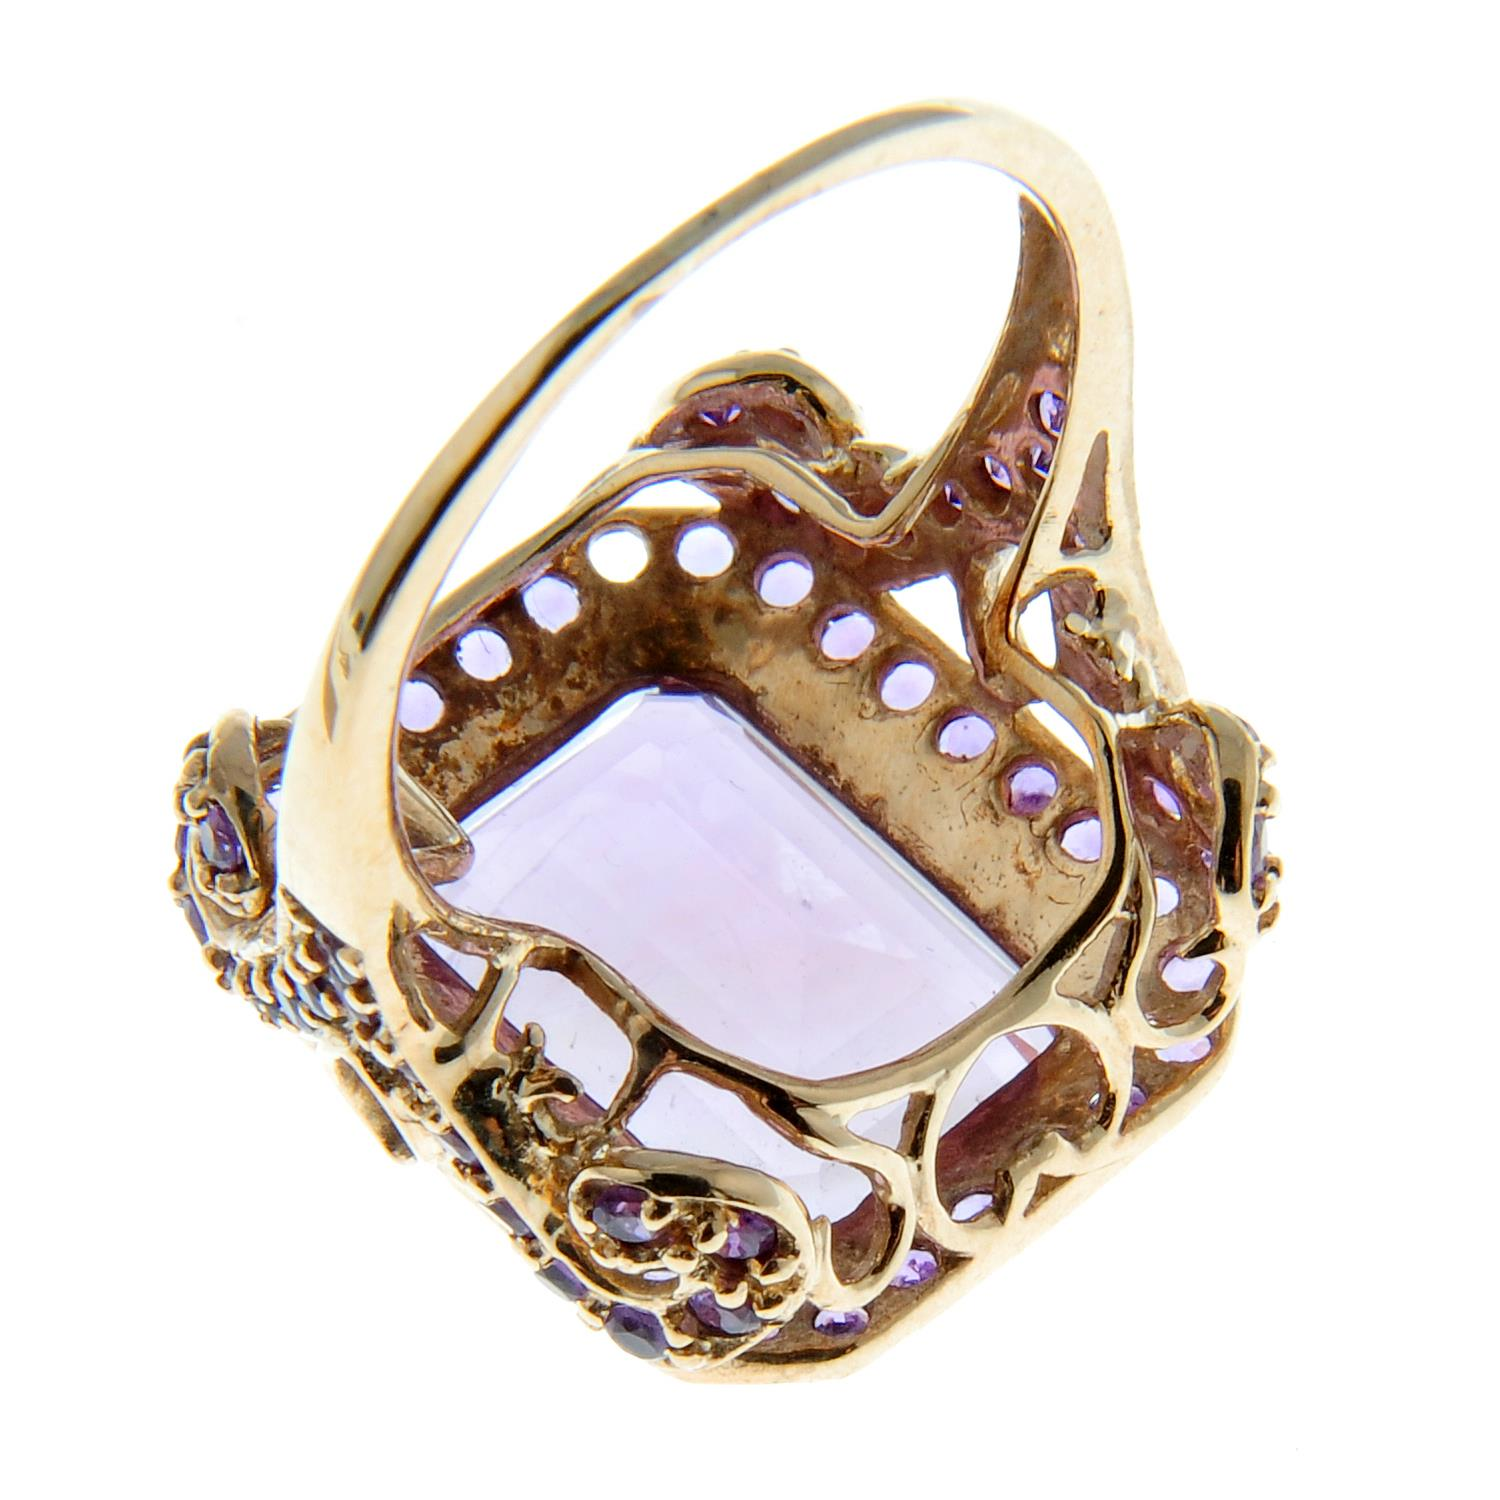 A 9ct gold amethyst dress ring. - Image 2 of 3